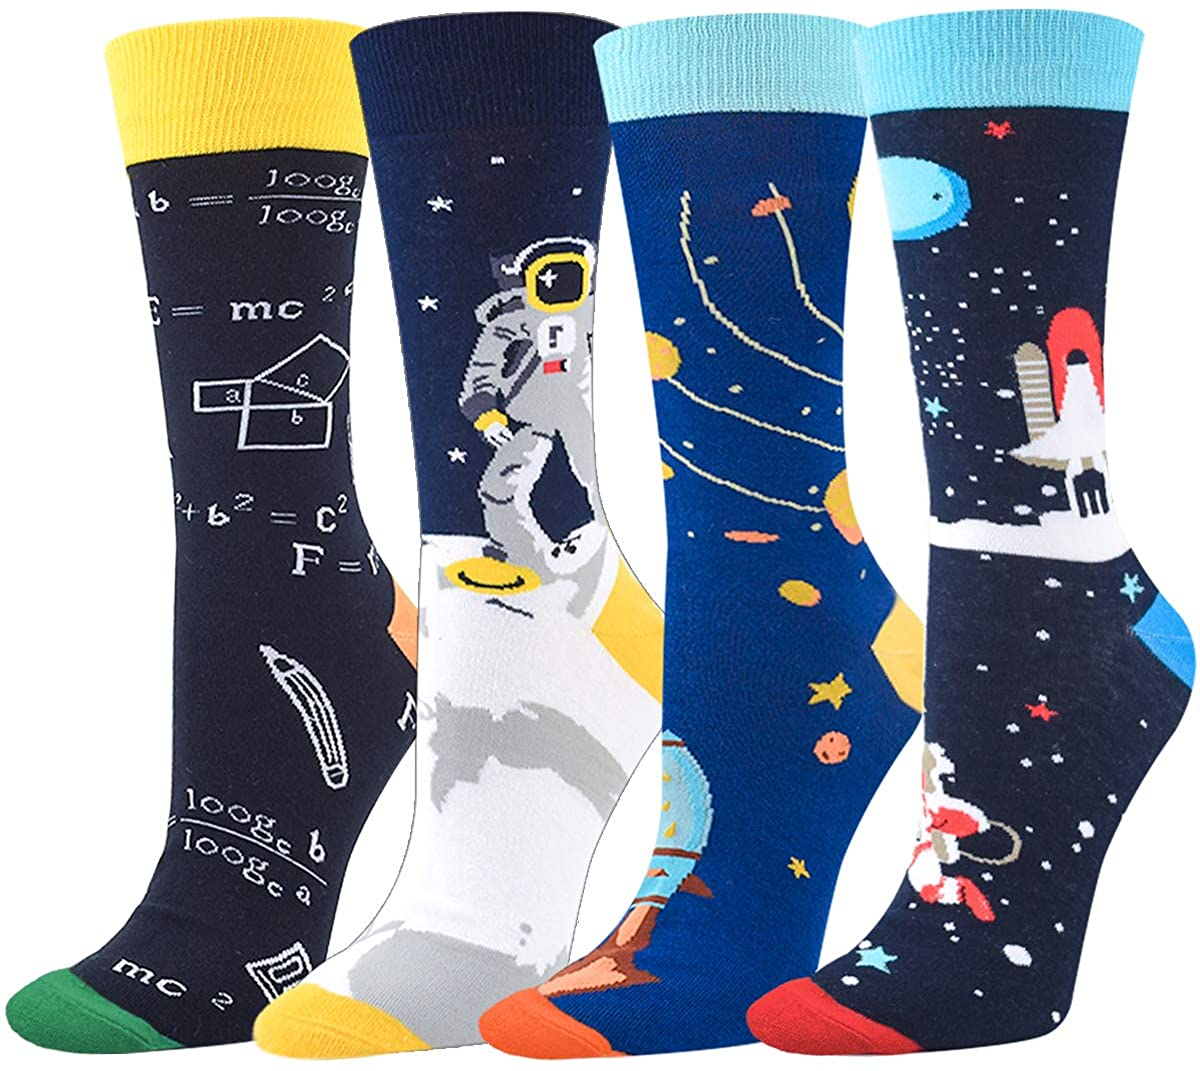 Seorsok Outer Space Novelty Crew Socks